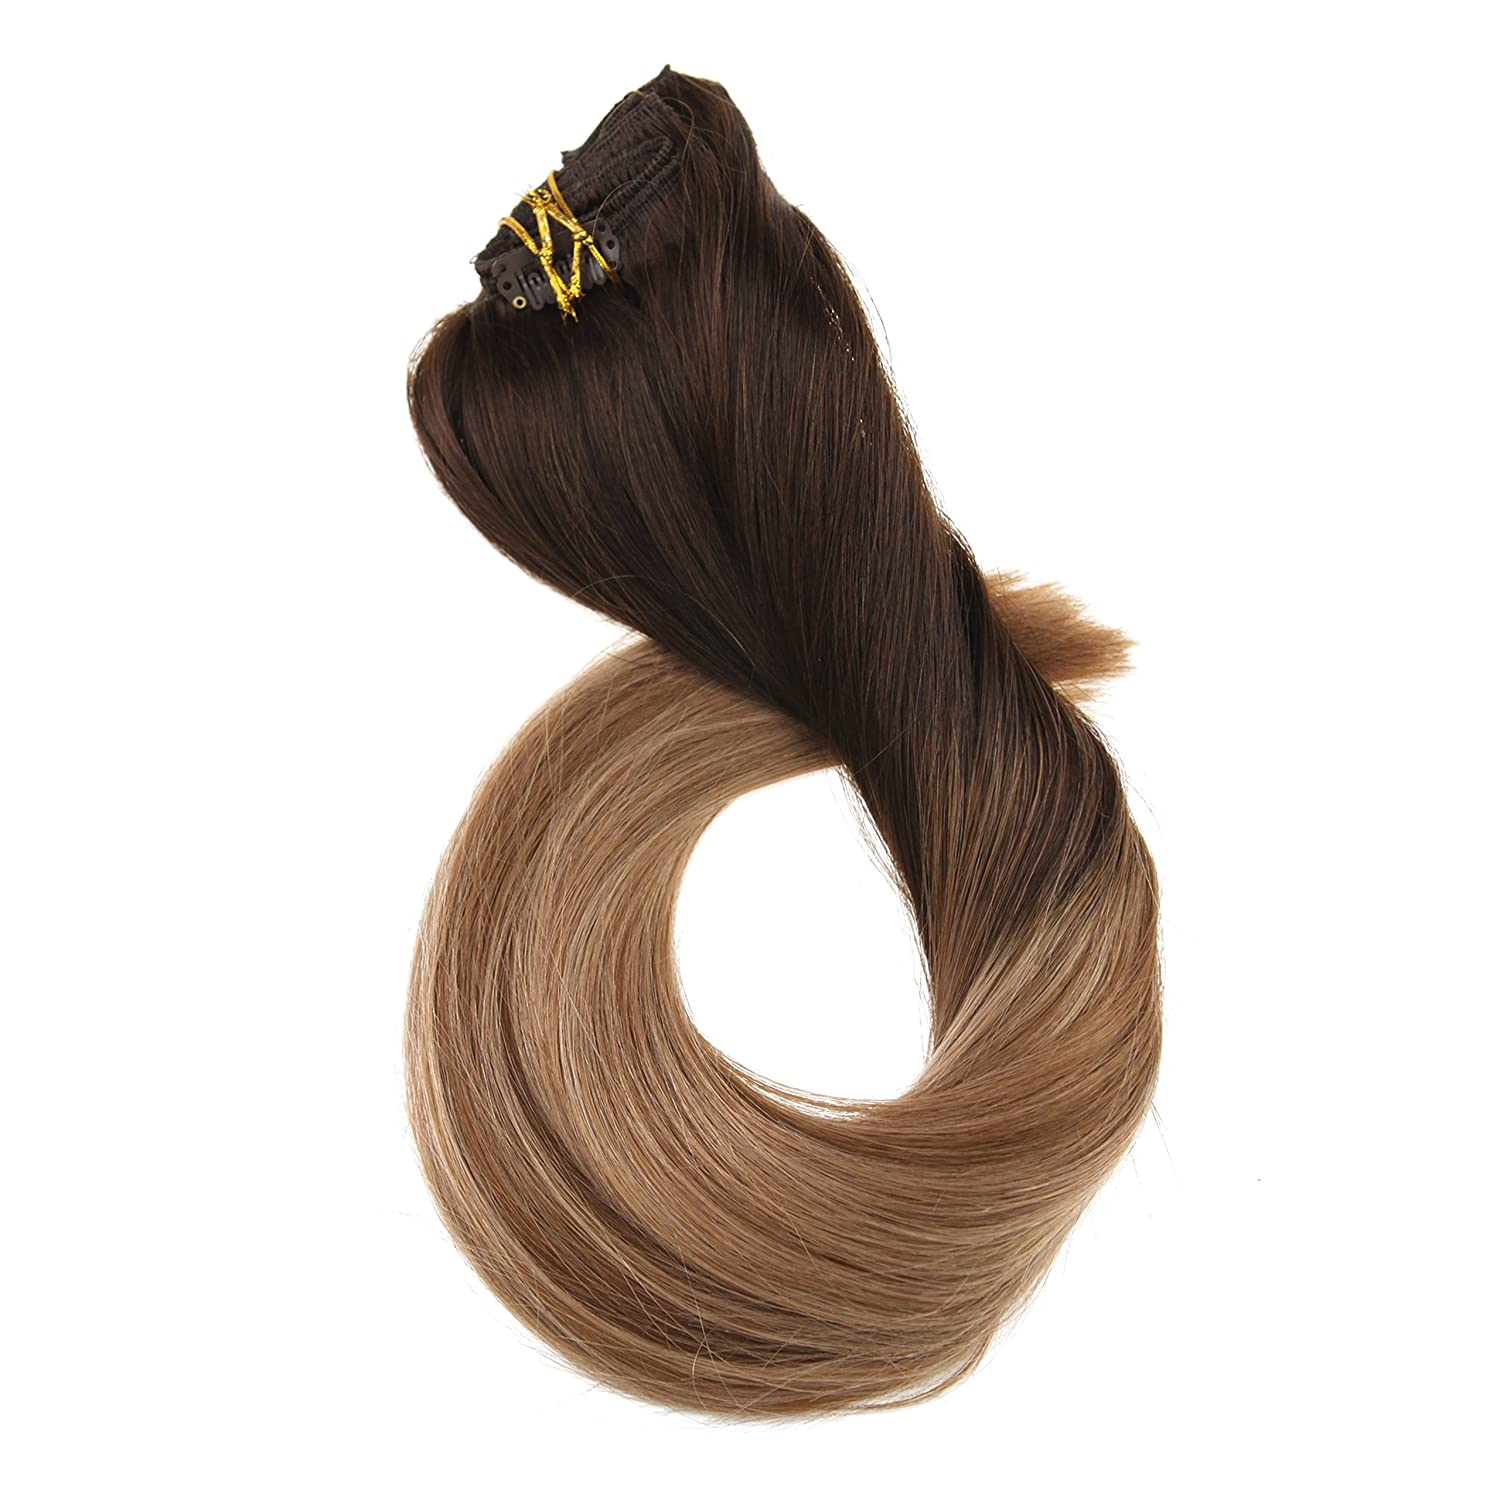 Ugeat 20inch 10pcs 160gram Clip In Remy Human Hair Extensions